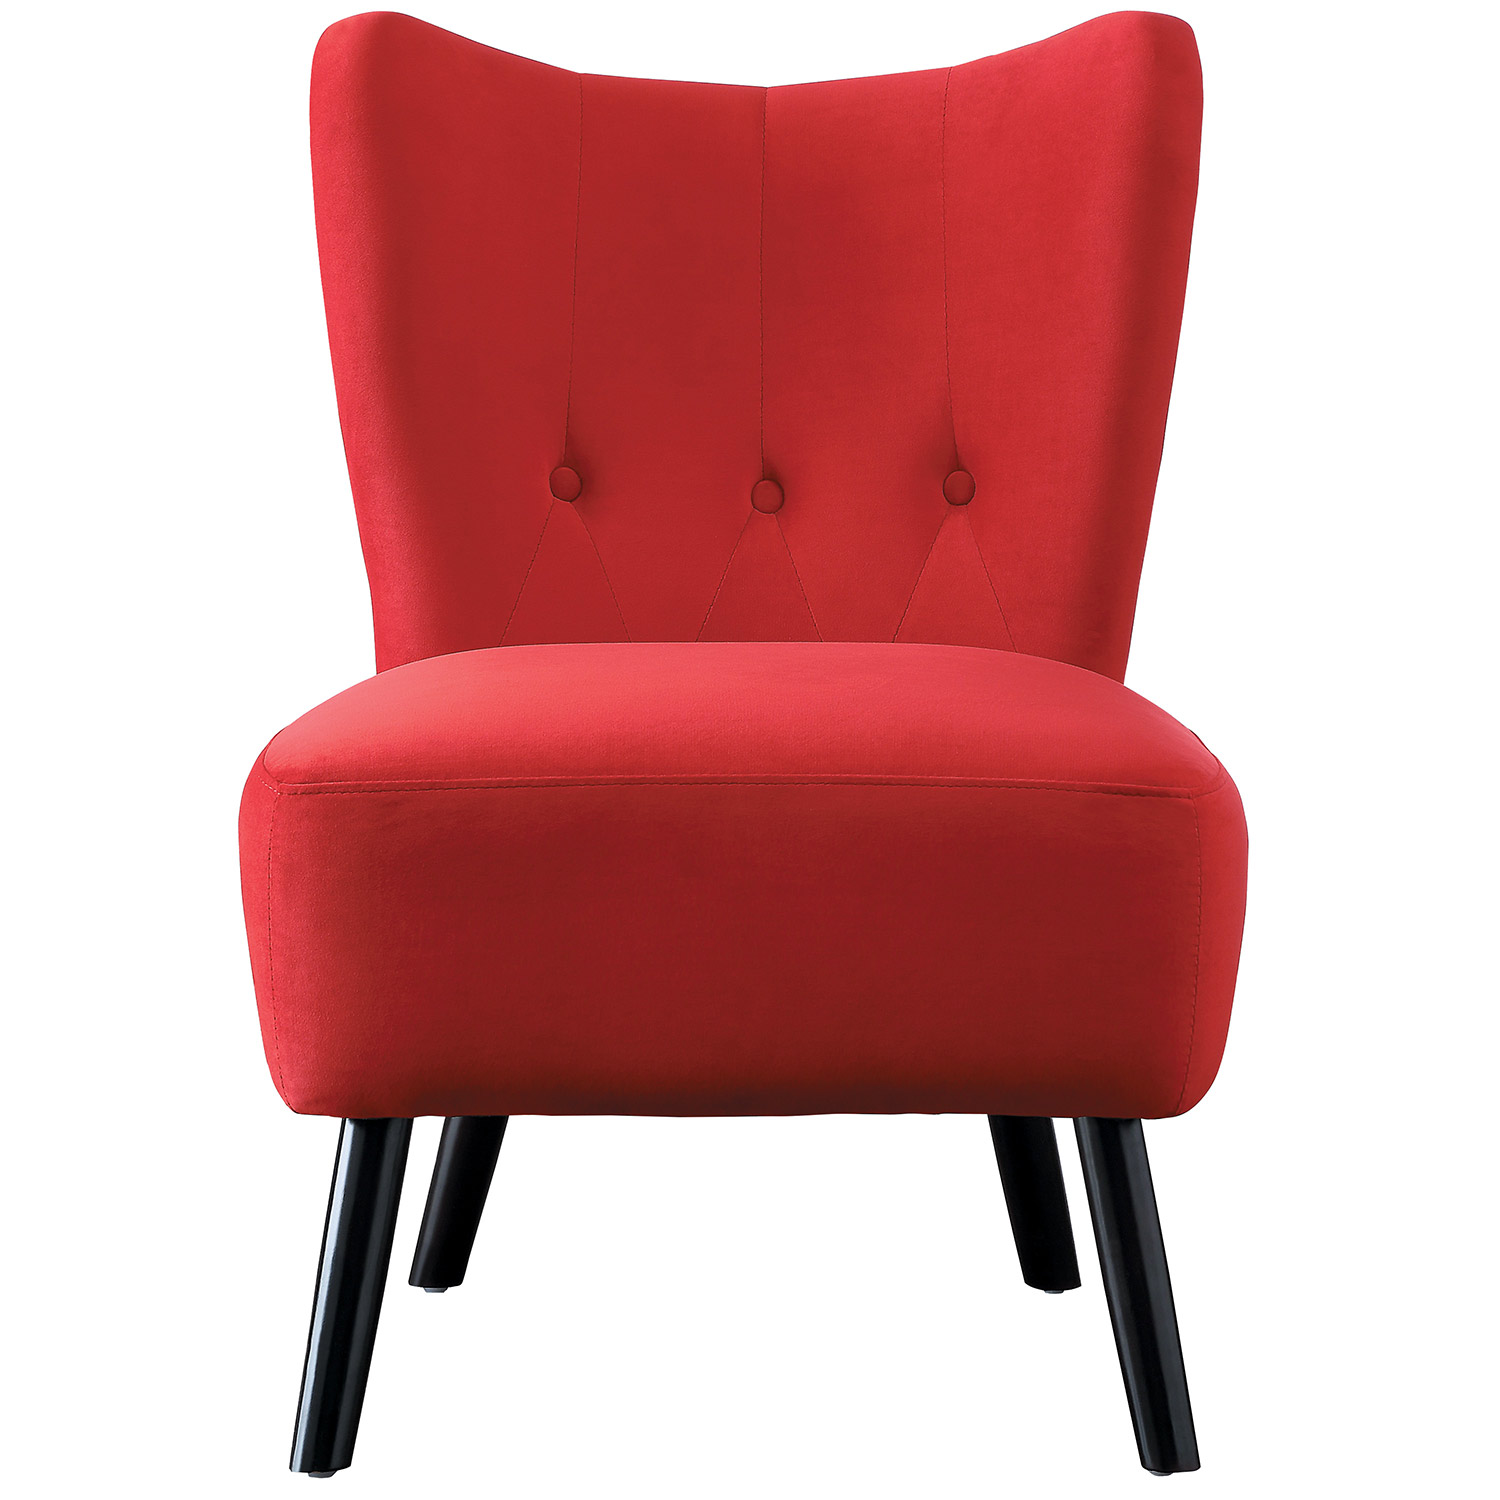 Homelegance Imani Accent Chair - Red